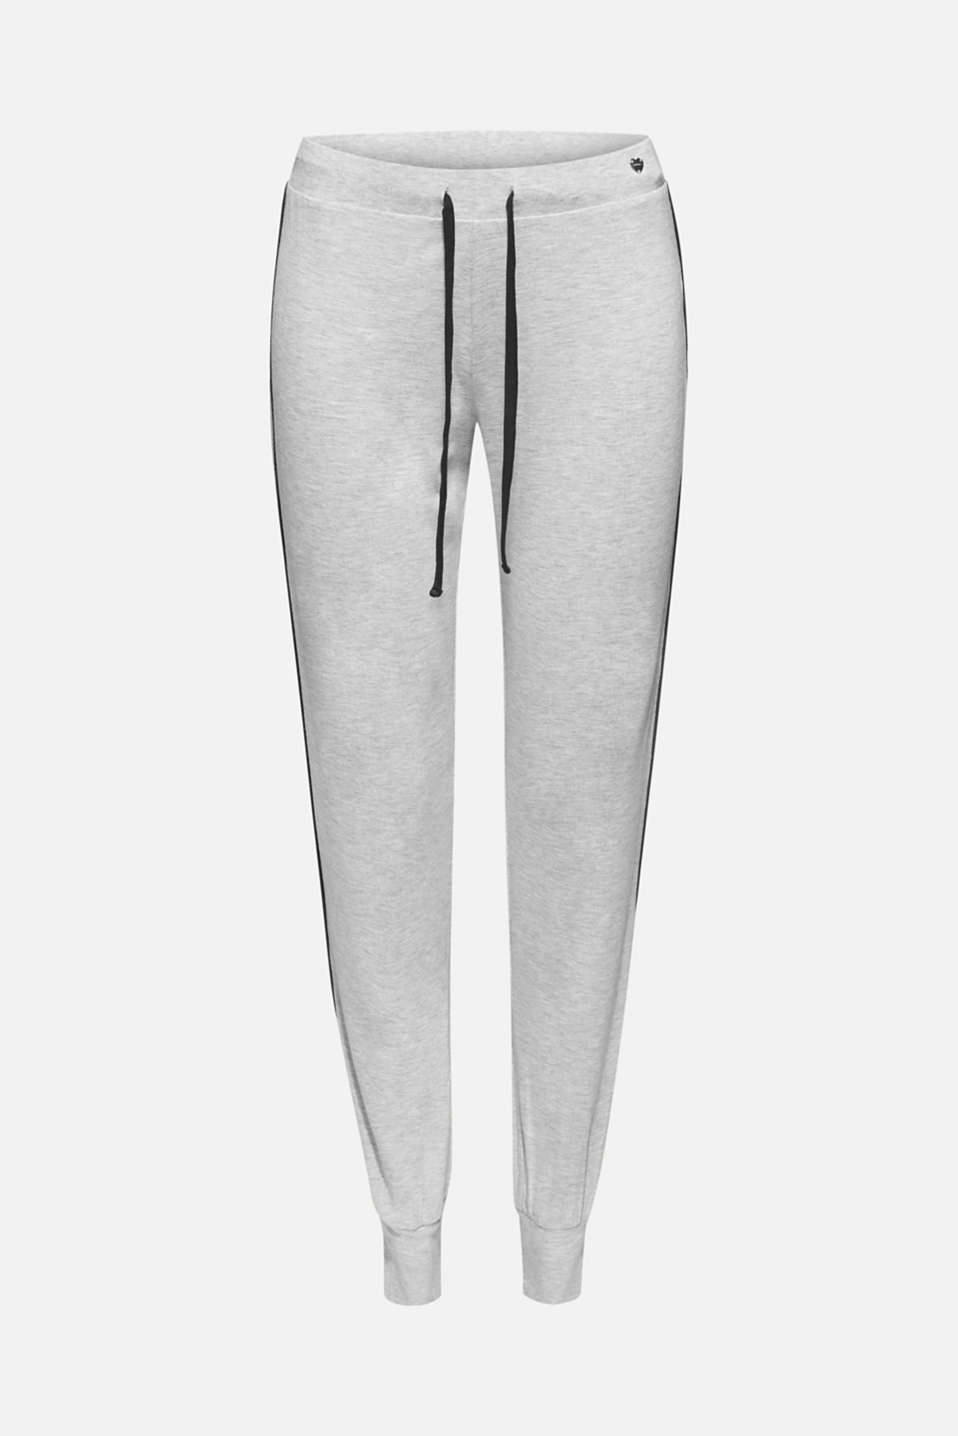 MELANGE mix + match stretch jersey trousers, LIGHT GREY, detail image number 5